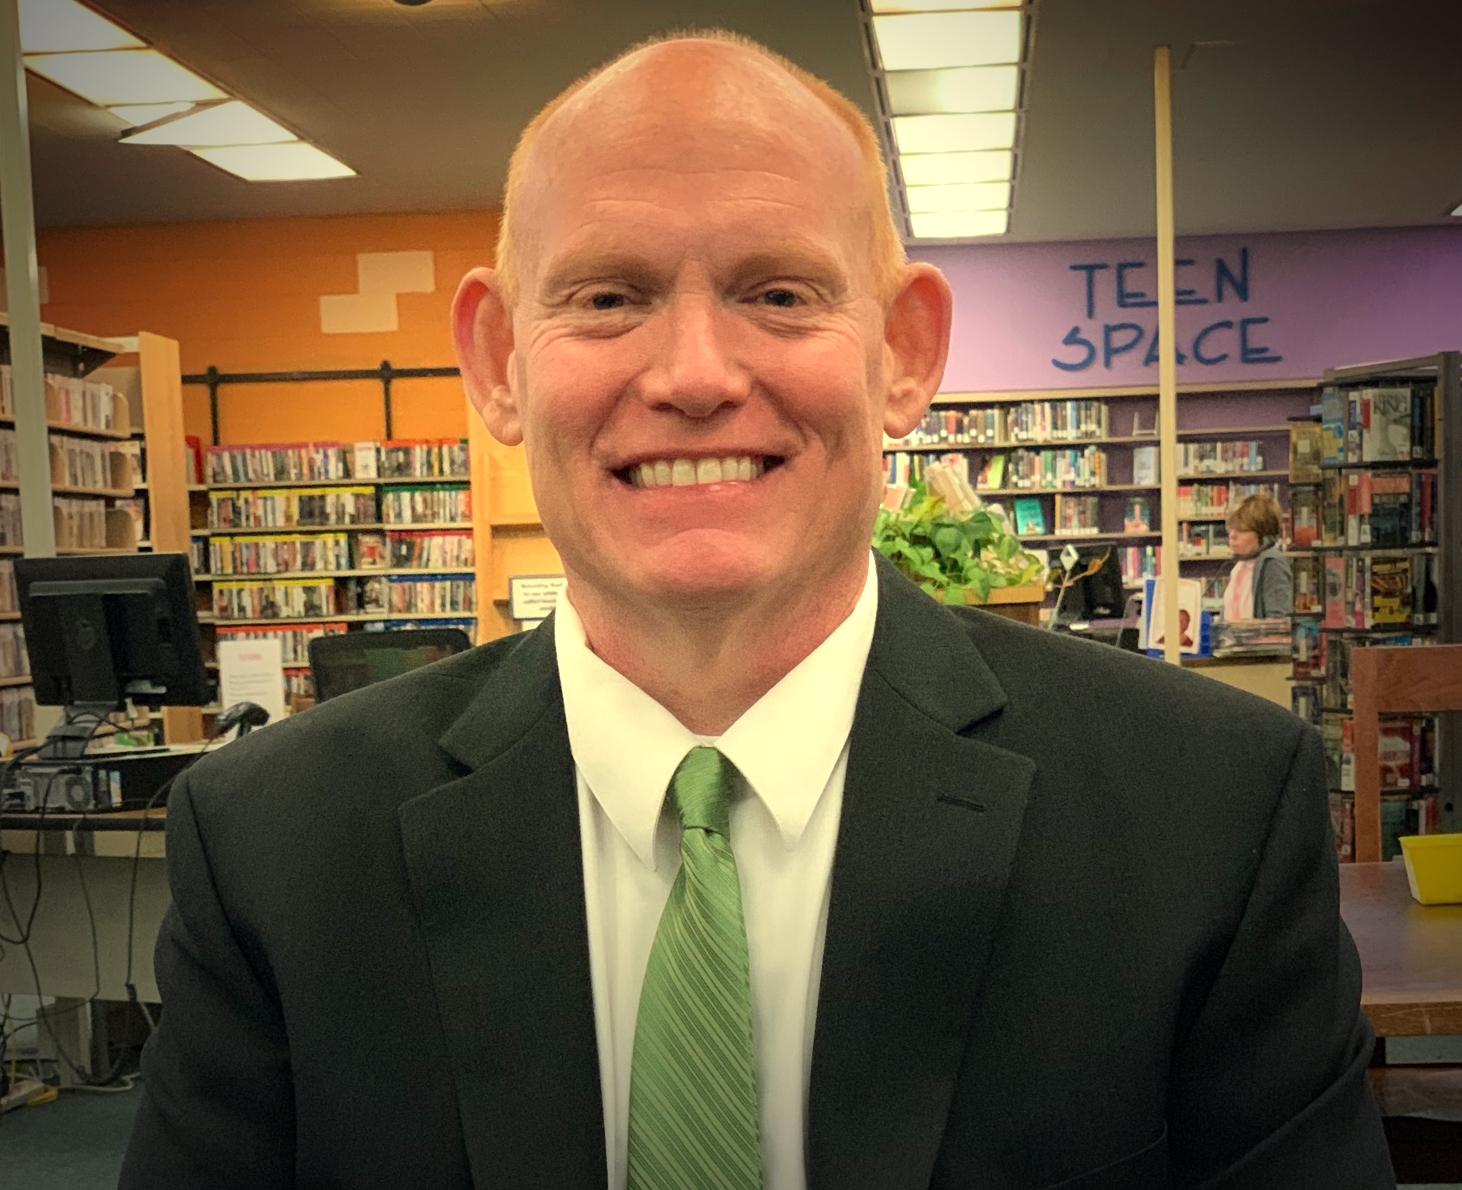 A white man wearing a suit with a green tie in a library.